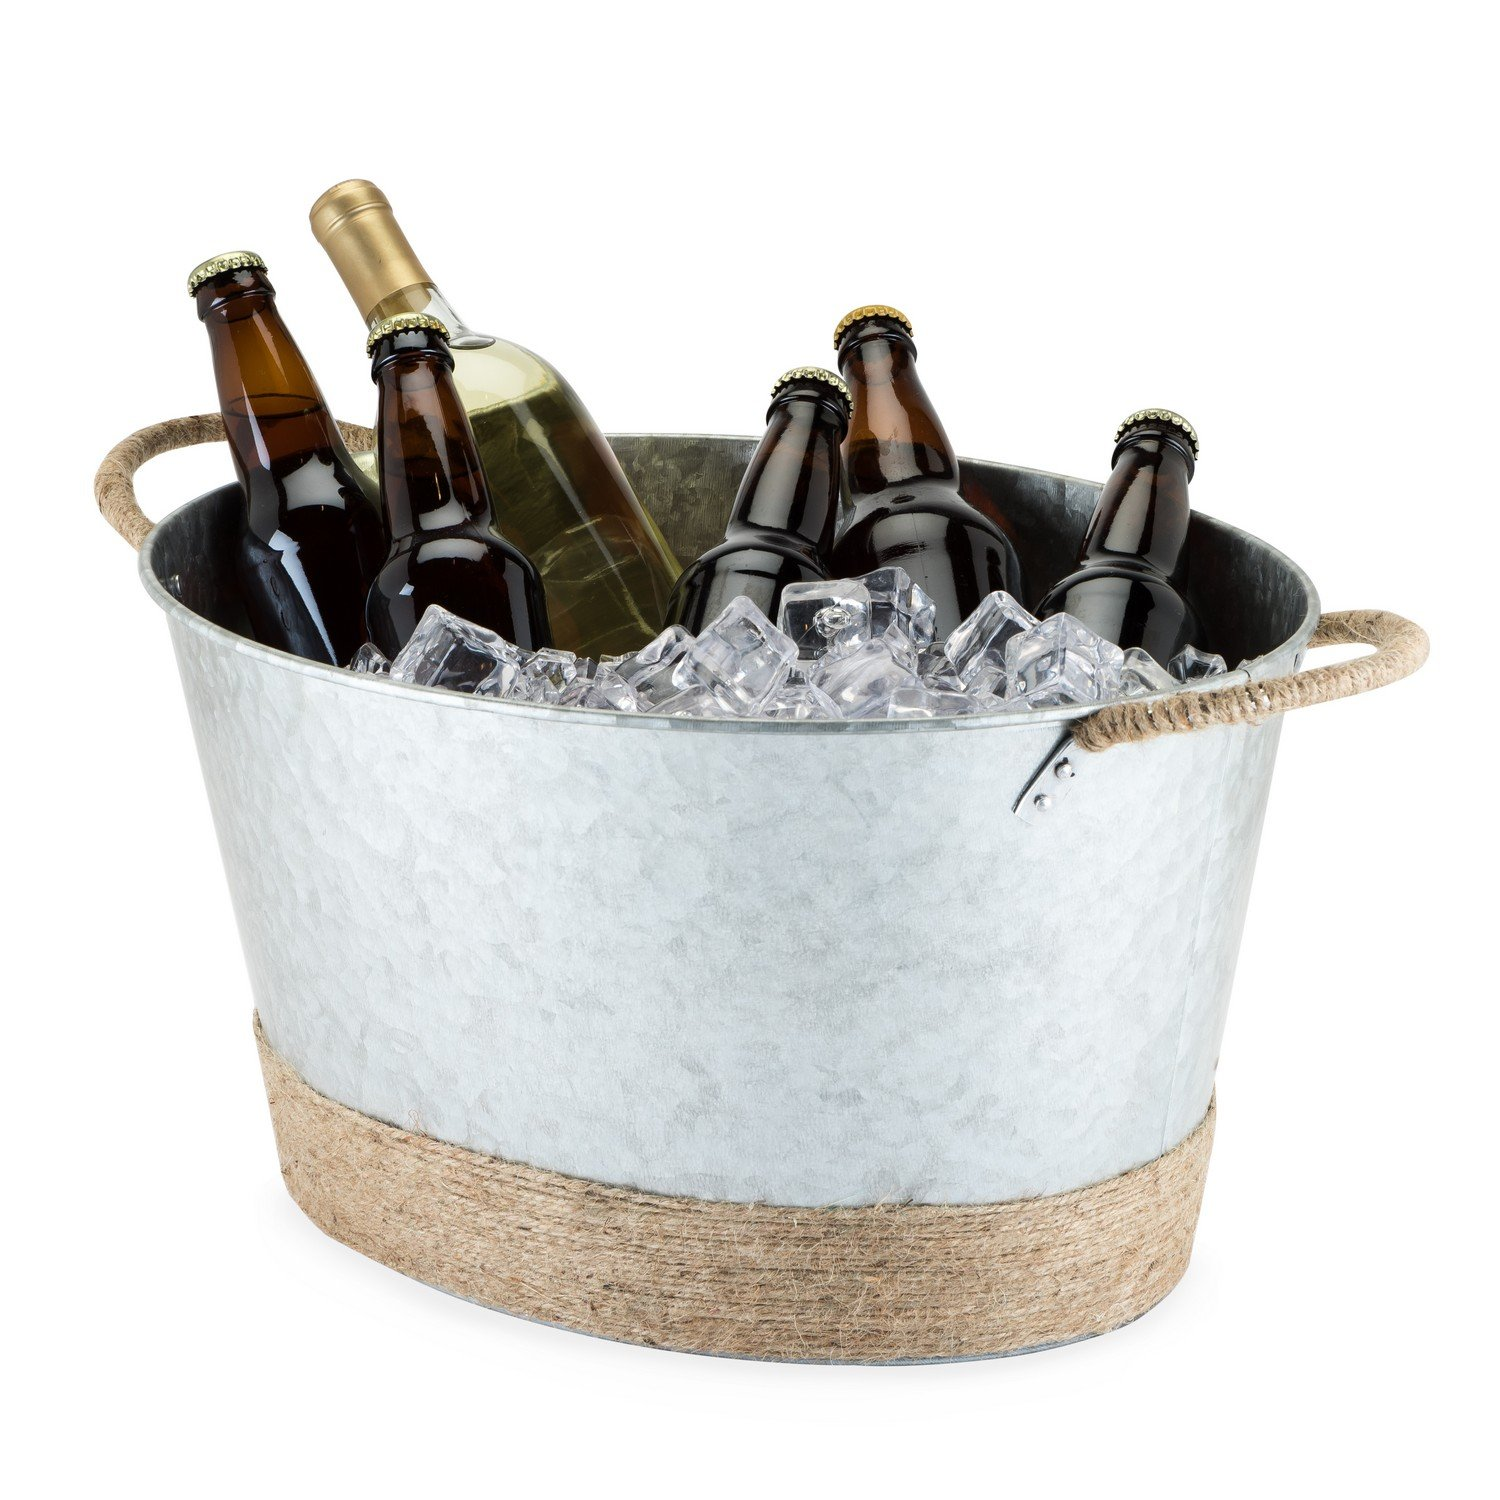 Ice Buckets Large, Jute Rope Wrapped Galvanized Tub Insulated Vintage Ice Bucket